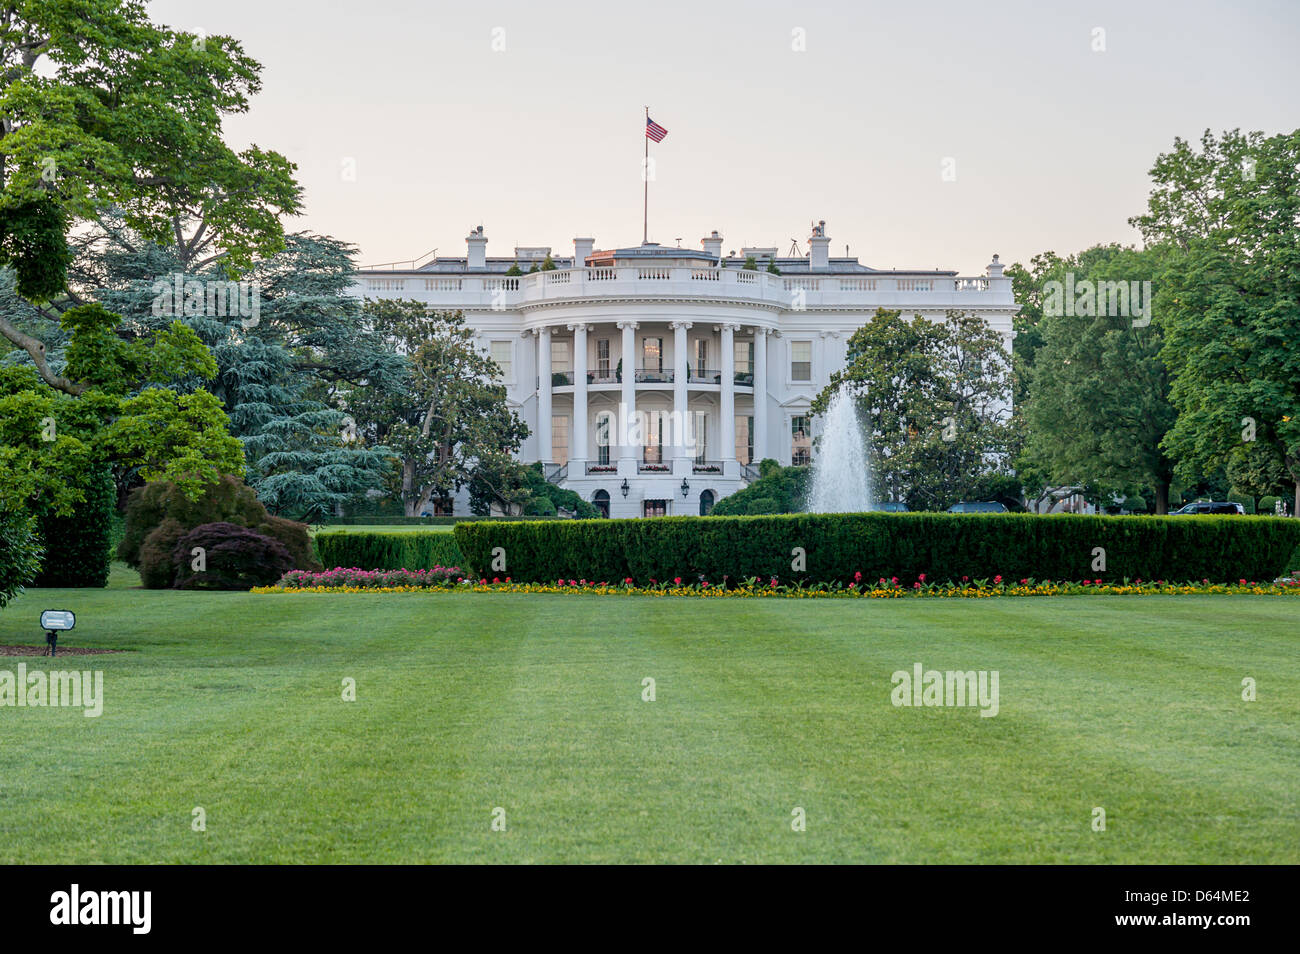 The White House - the home and office of the President of the United States of America - Stock Image